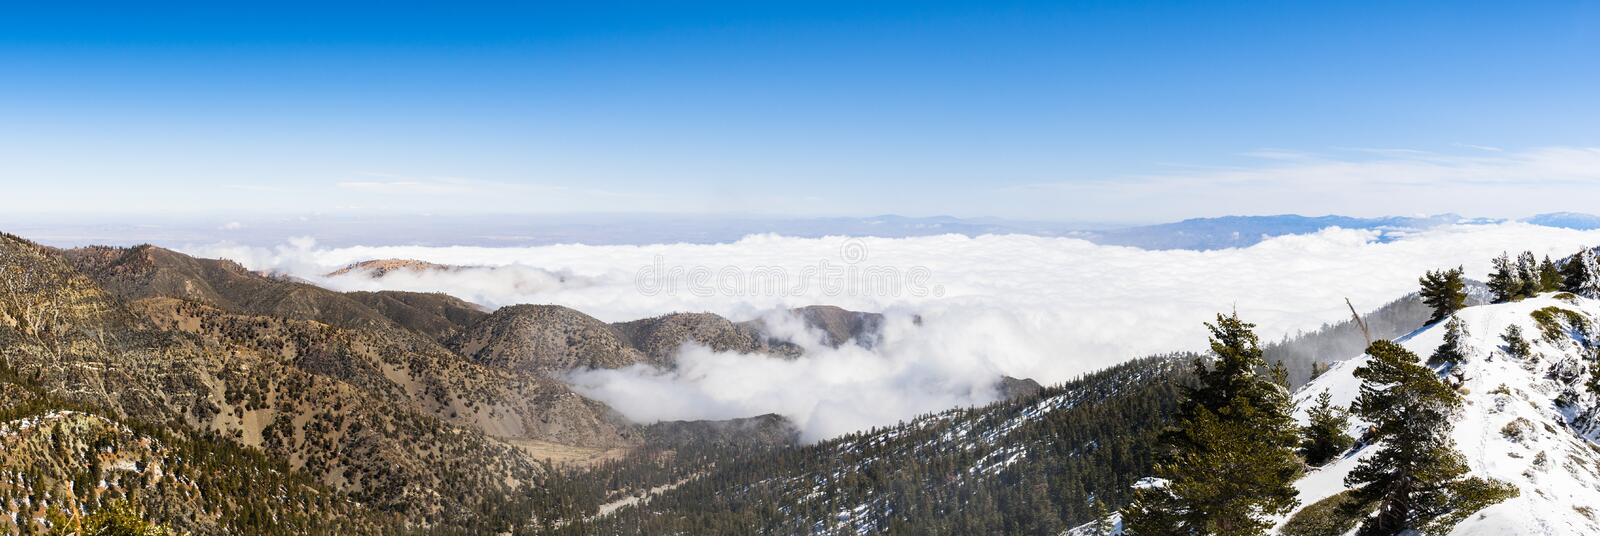 Sunny winter day with fallen snow and a sea of white clouds on the trail to Mt San Antonio (Mt Baldy), Los Angeles county,. Southern California stock photography